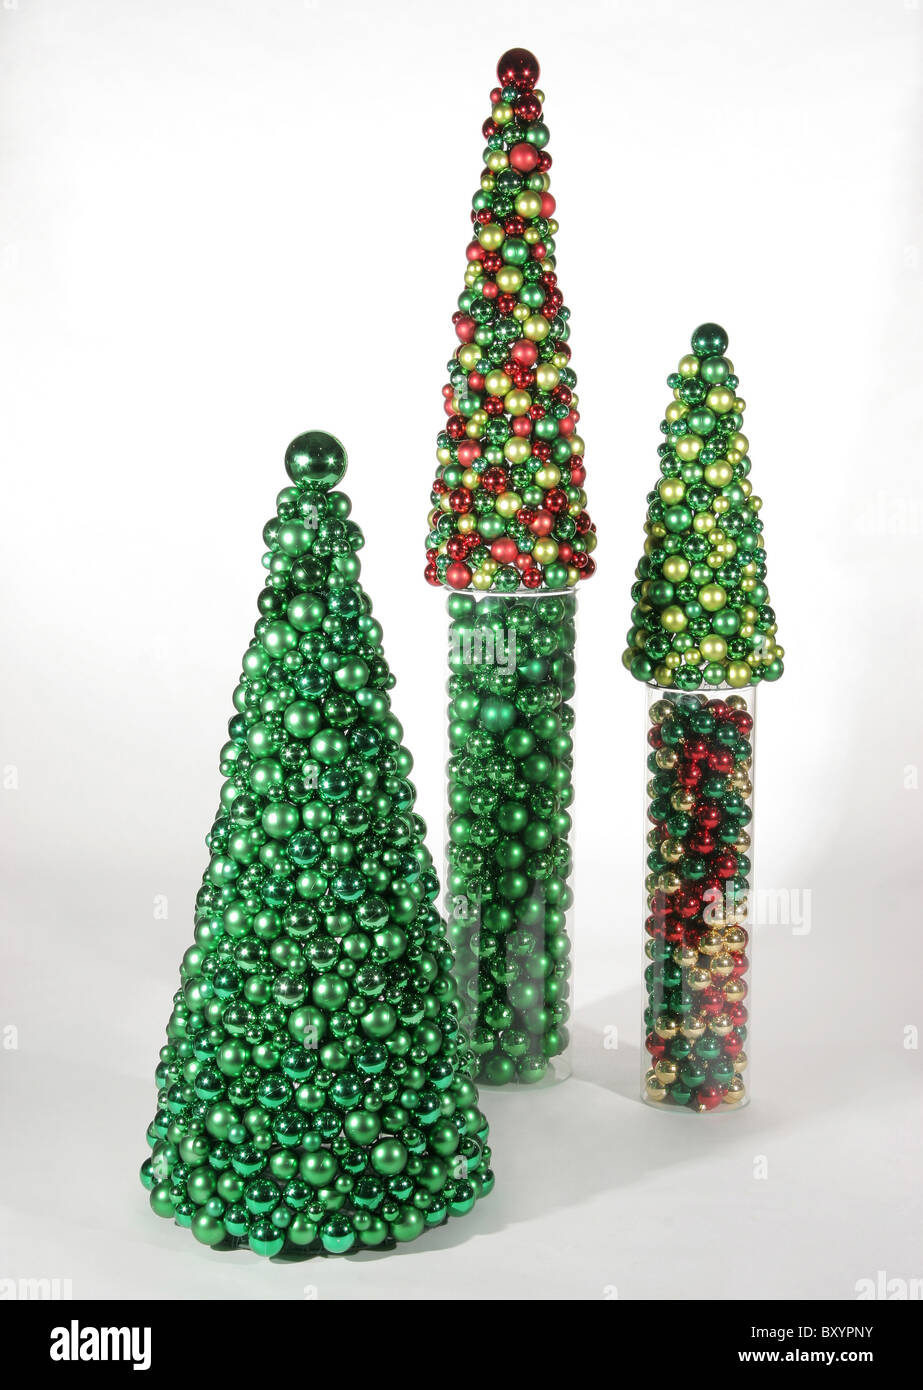 Multicolored Christmas Trees Stock Photos & Multicolored Christmas ...